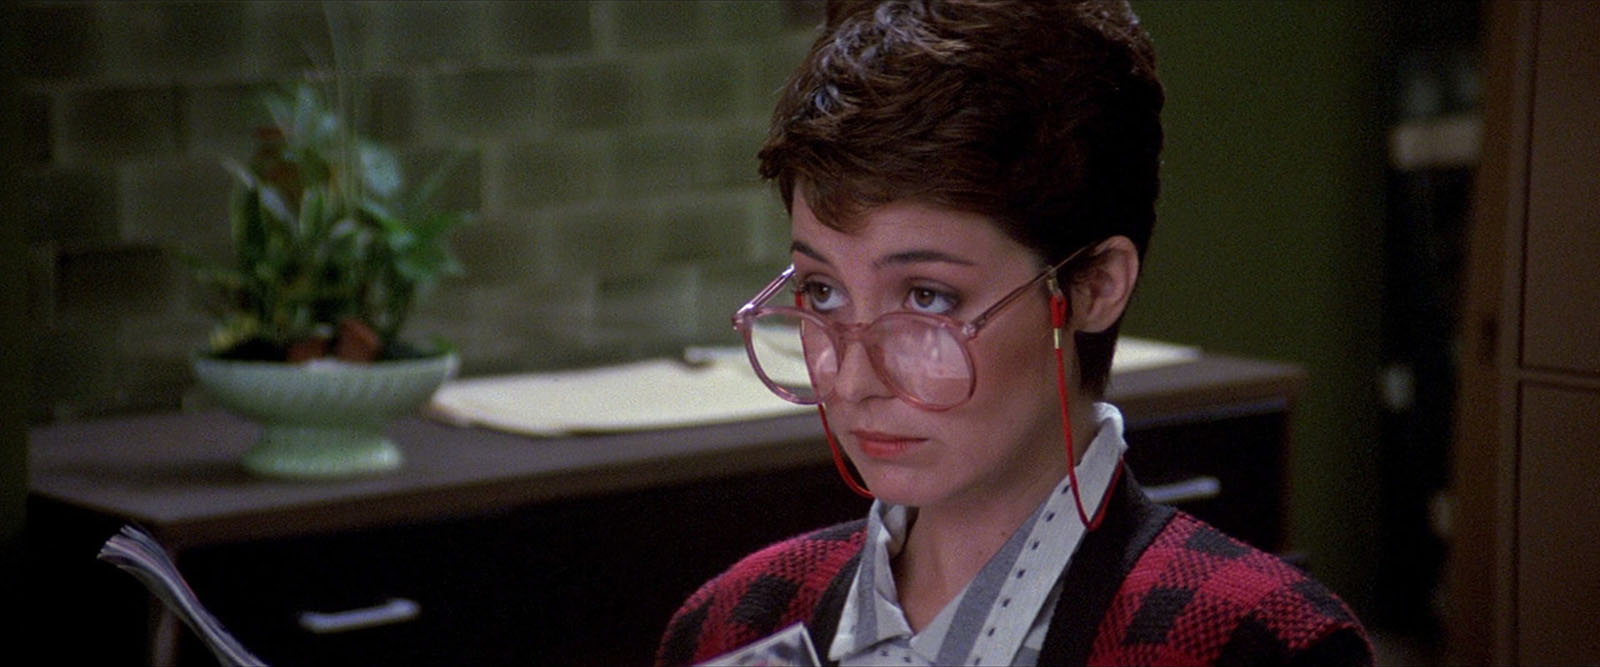 ghostbusters-1984-annie-potts